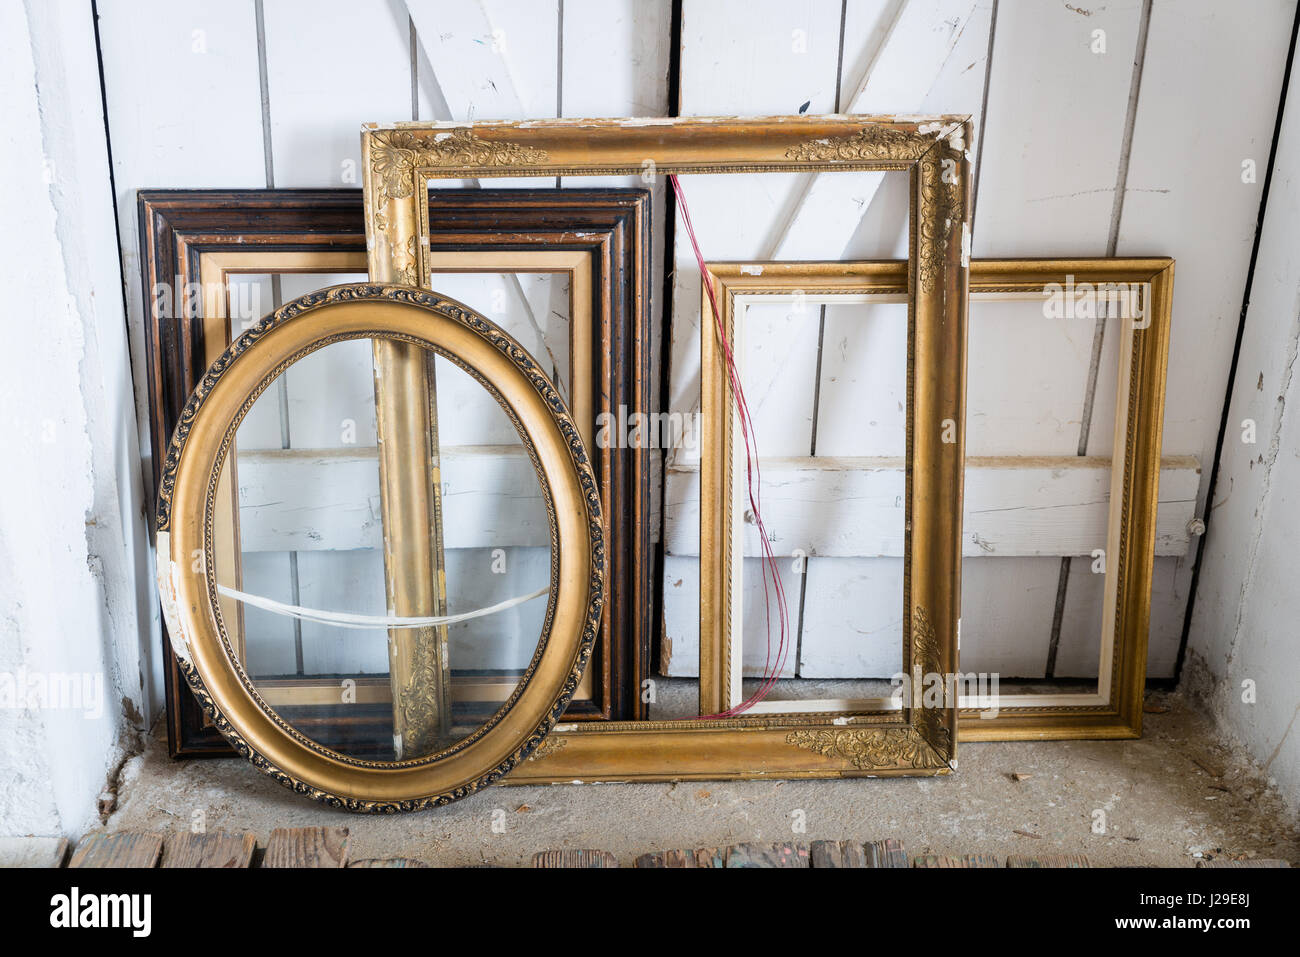 Old wooden painting frames on the floor Stock Photo: 139121042 - Alamy